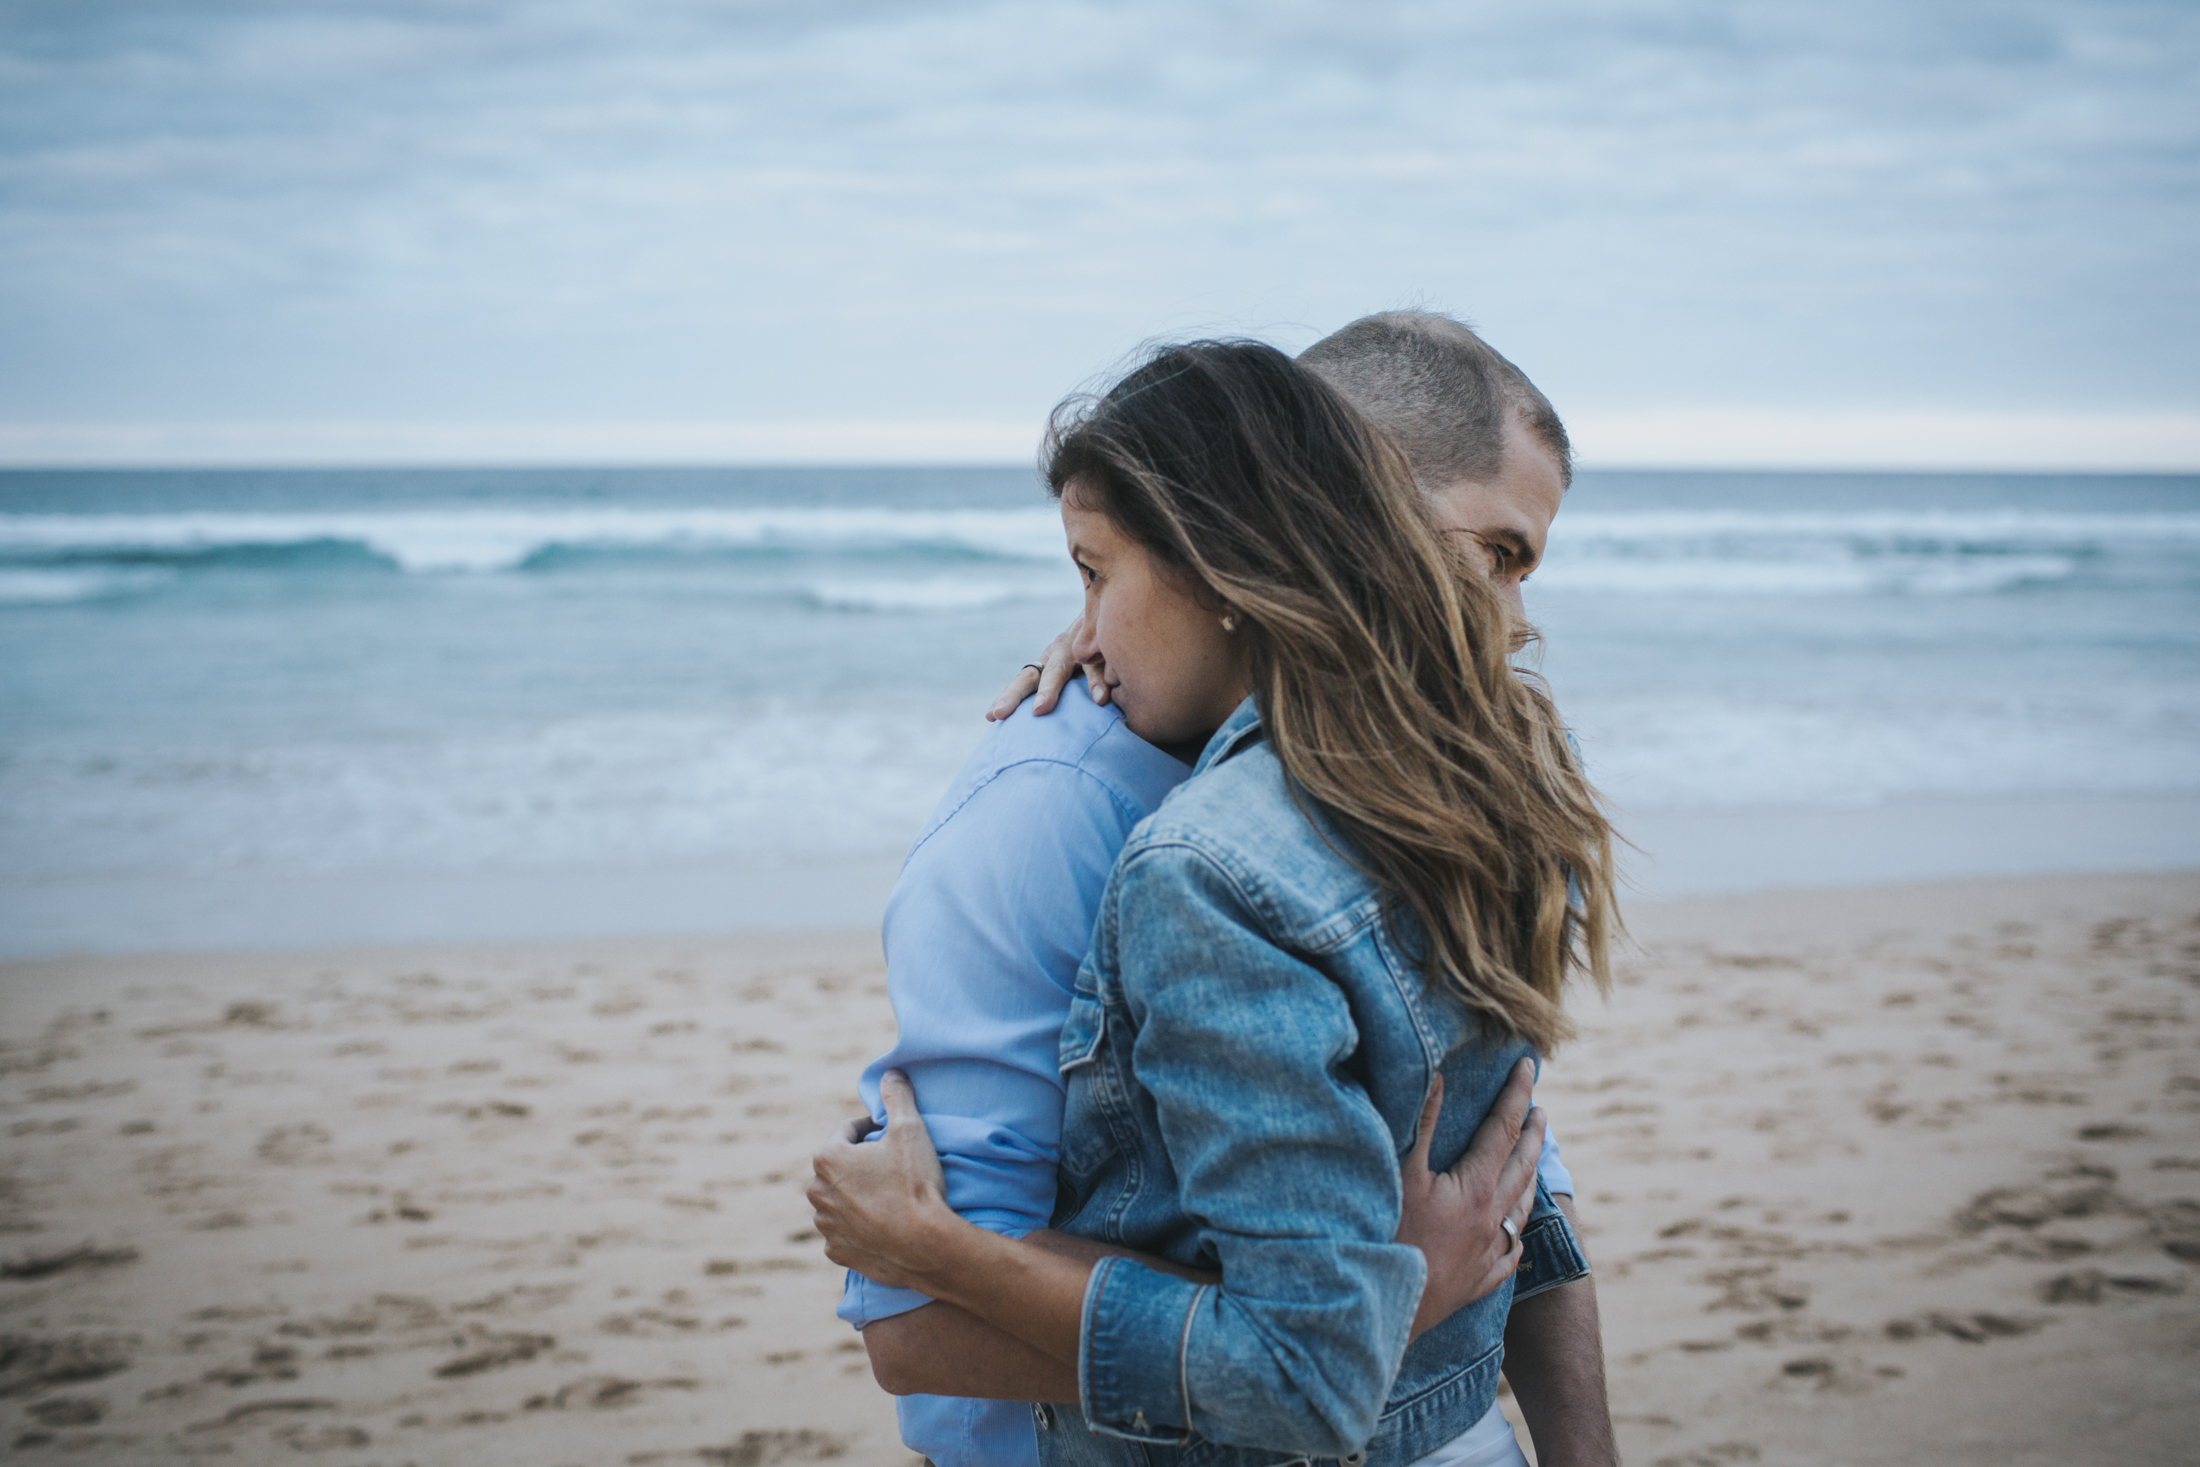 sheridan_nilsson_northern_beaches_family_photographer_maternity.-2579.jpg